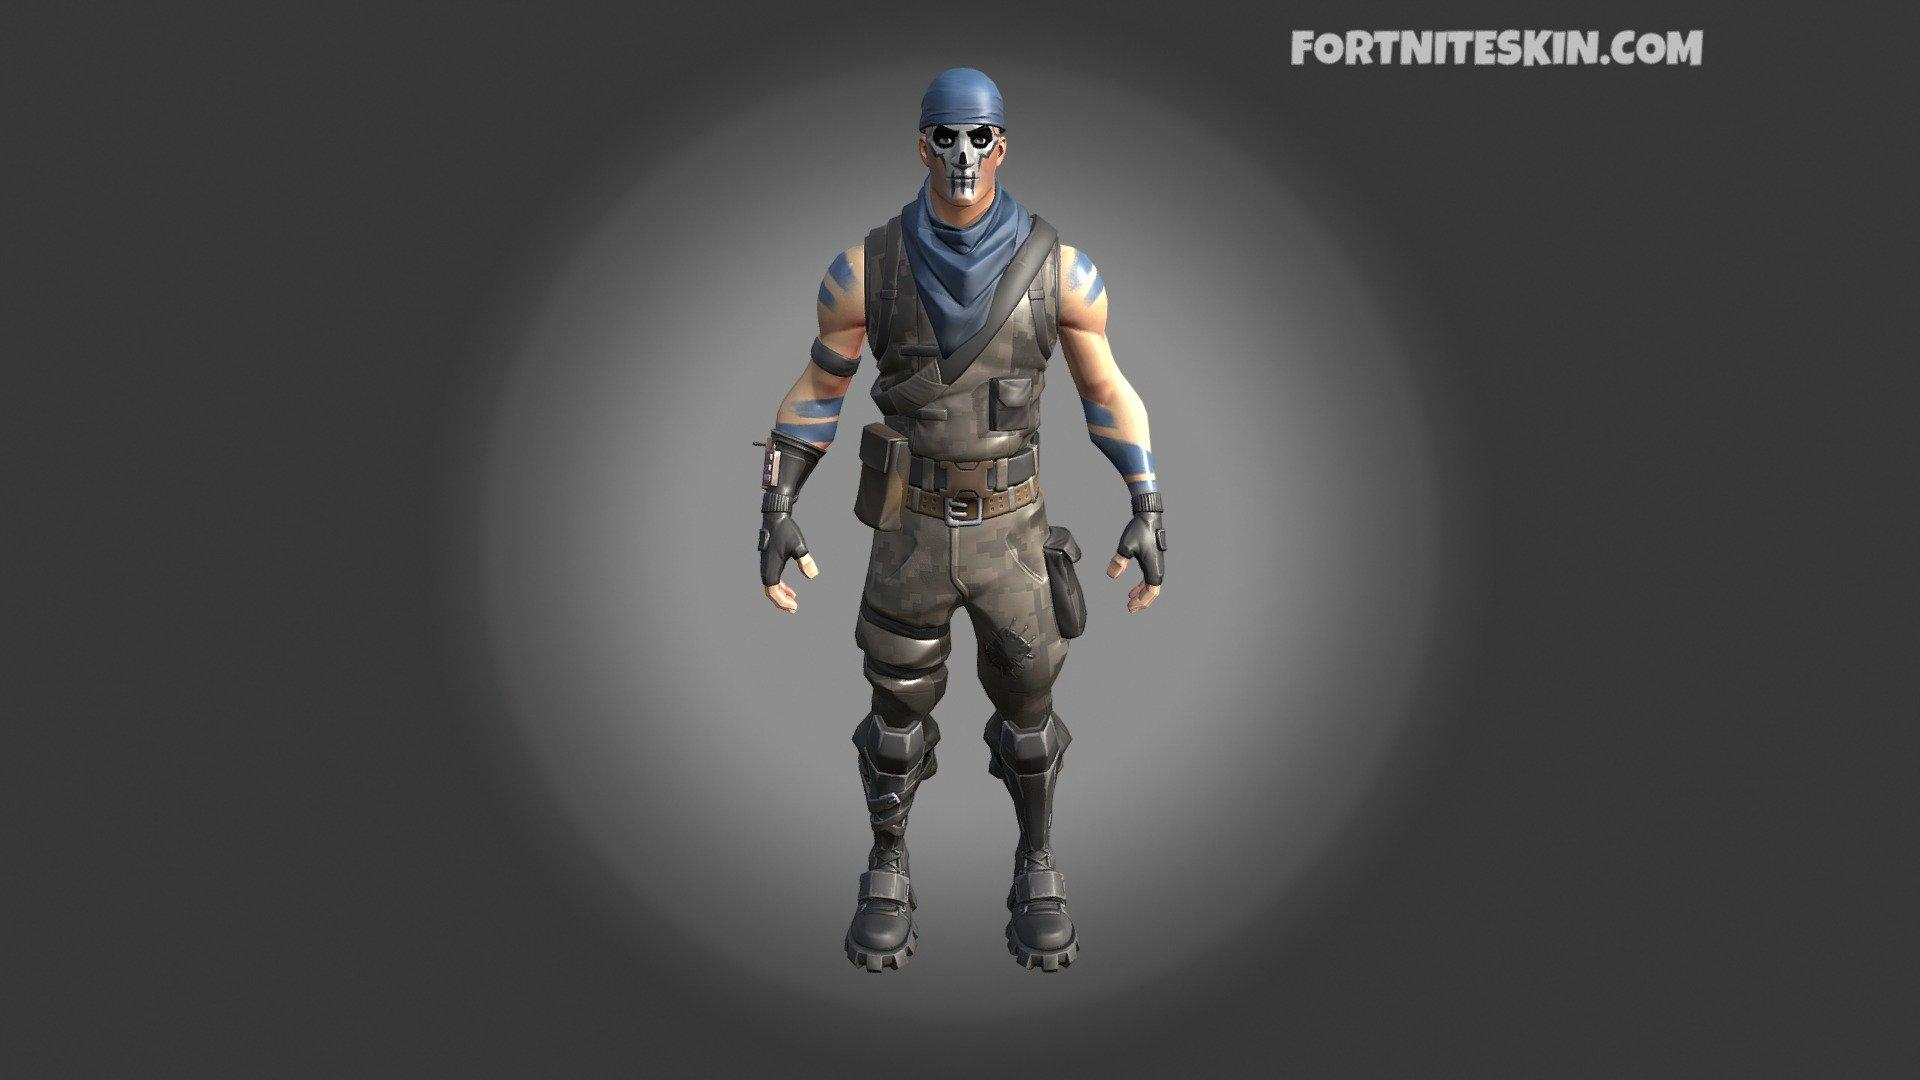 FORTNITE Warpaint Outfit - 3D model by FortniteSkin.com ...